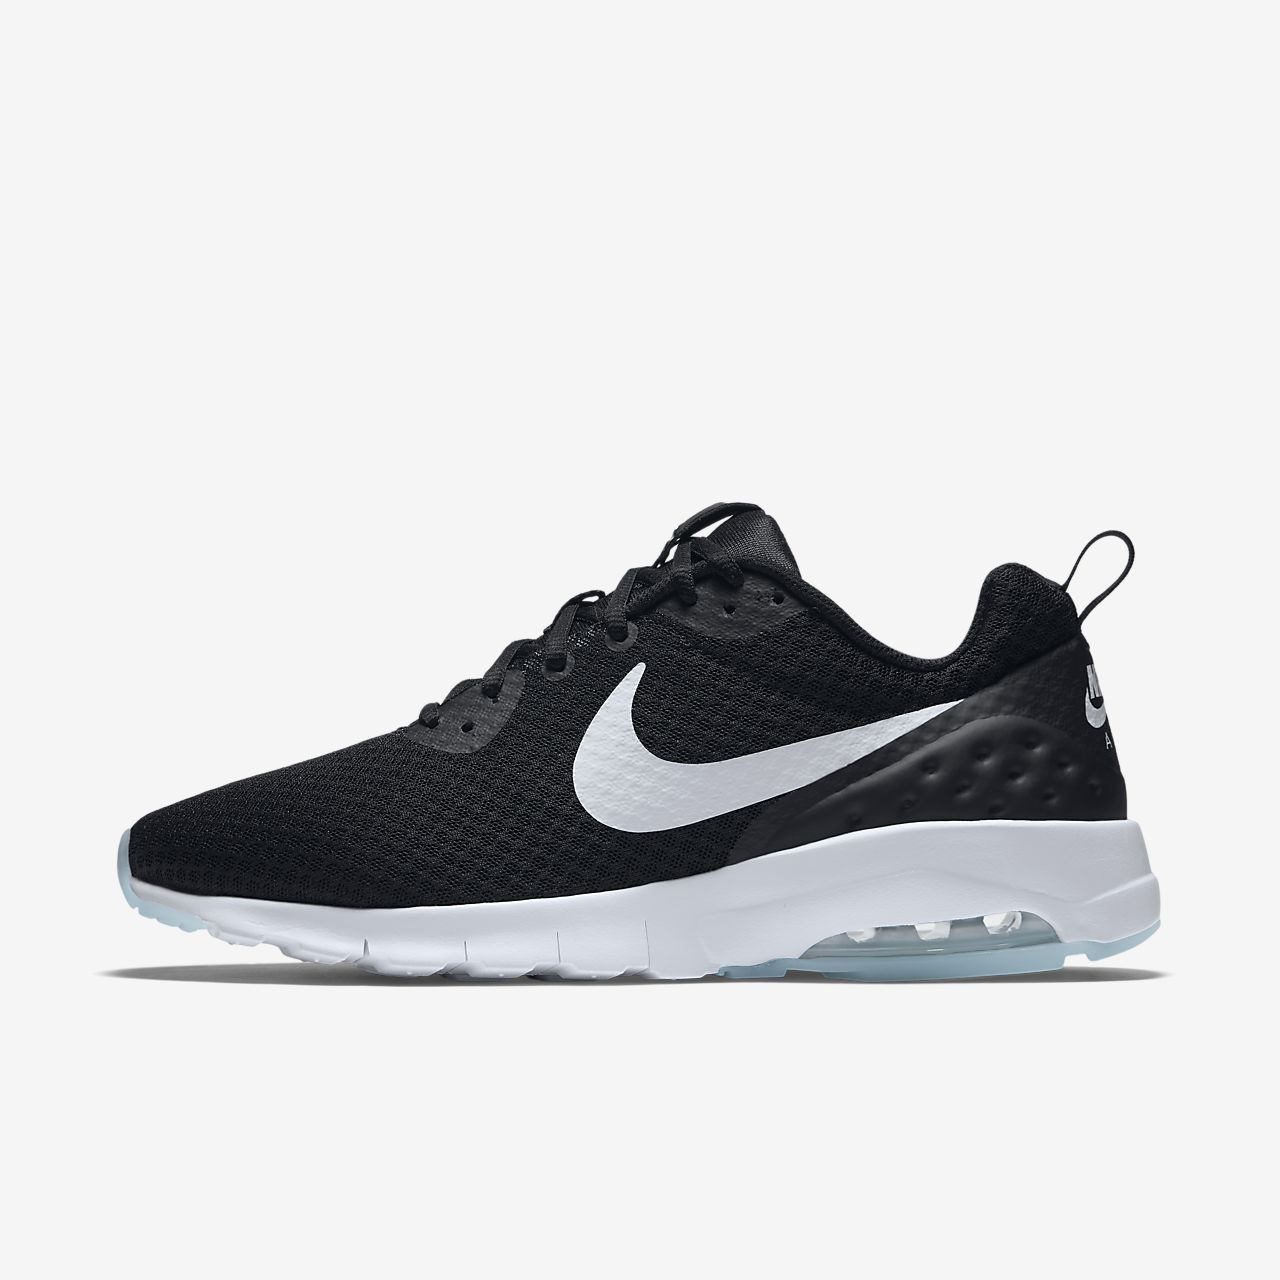 quality design bede1 181d3 Nike Air Max Motion Low Zapatillas - Hombre. Nike.com ES